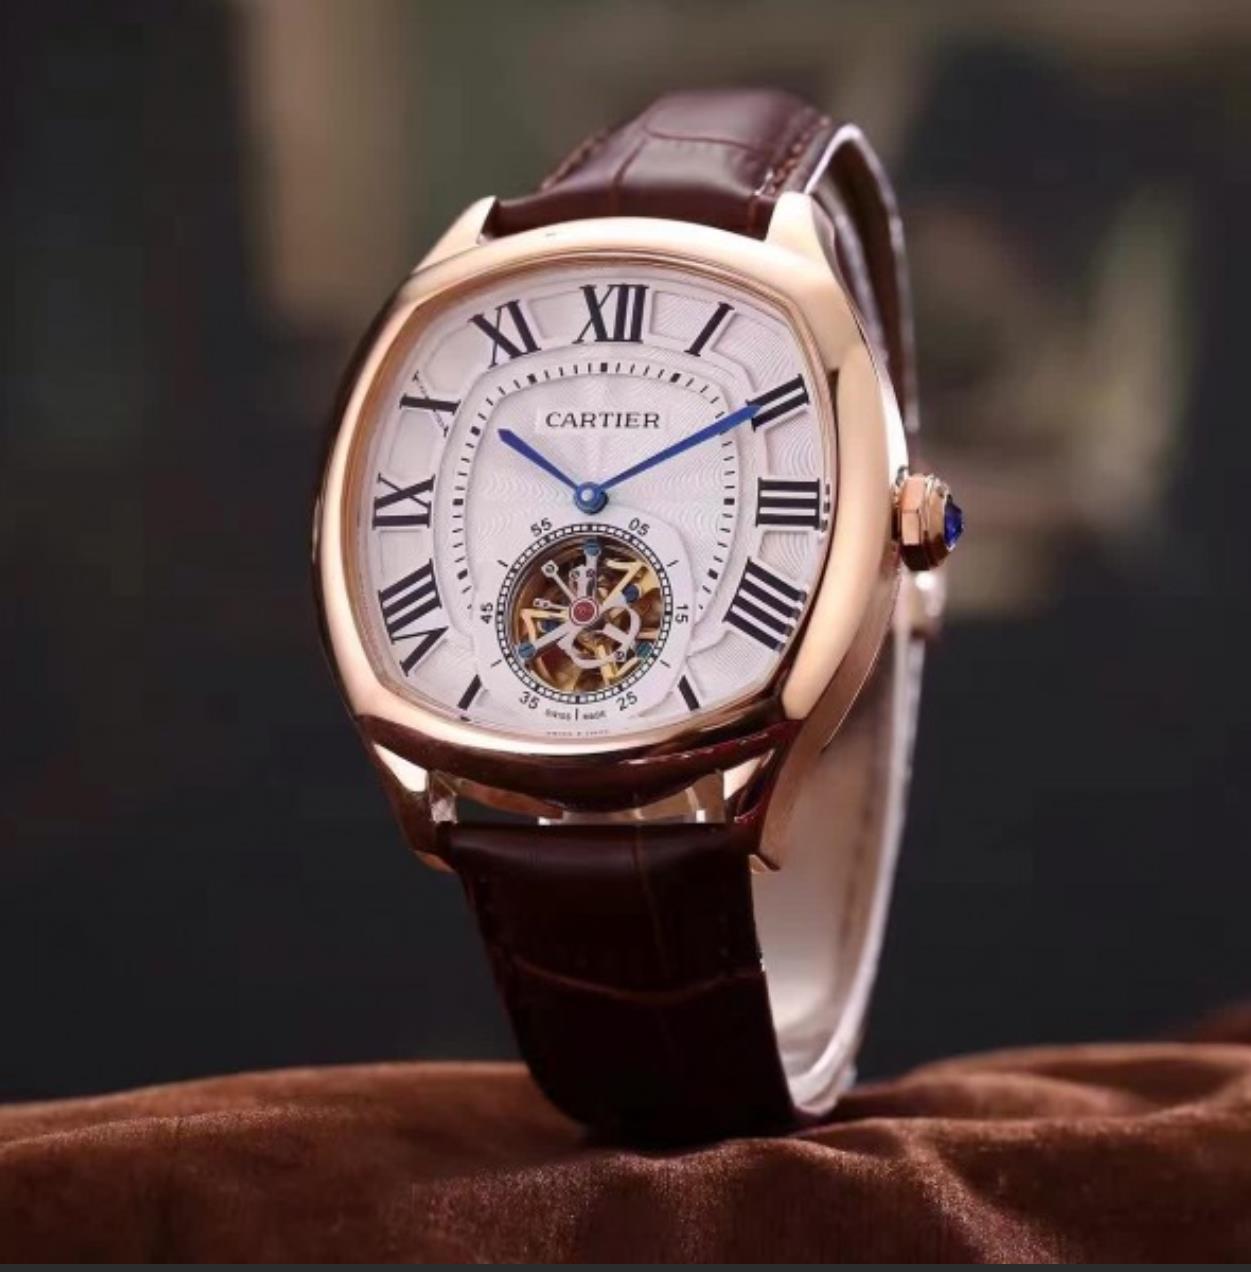 The 18k rose gold fake watch has a silvery dial.